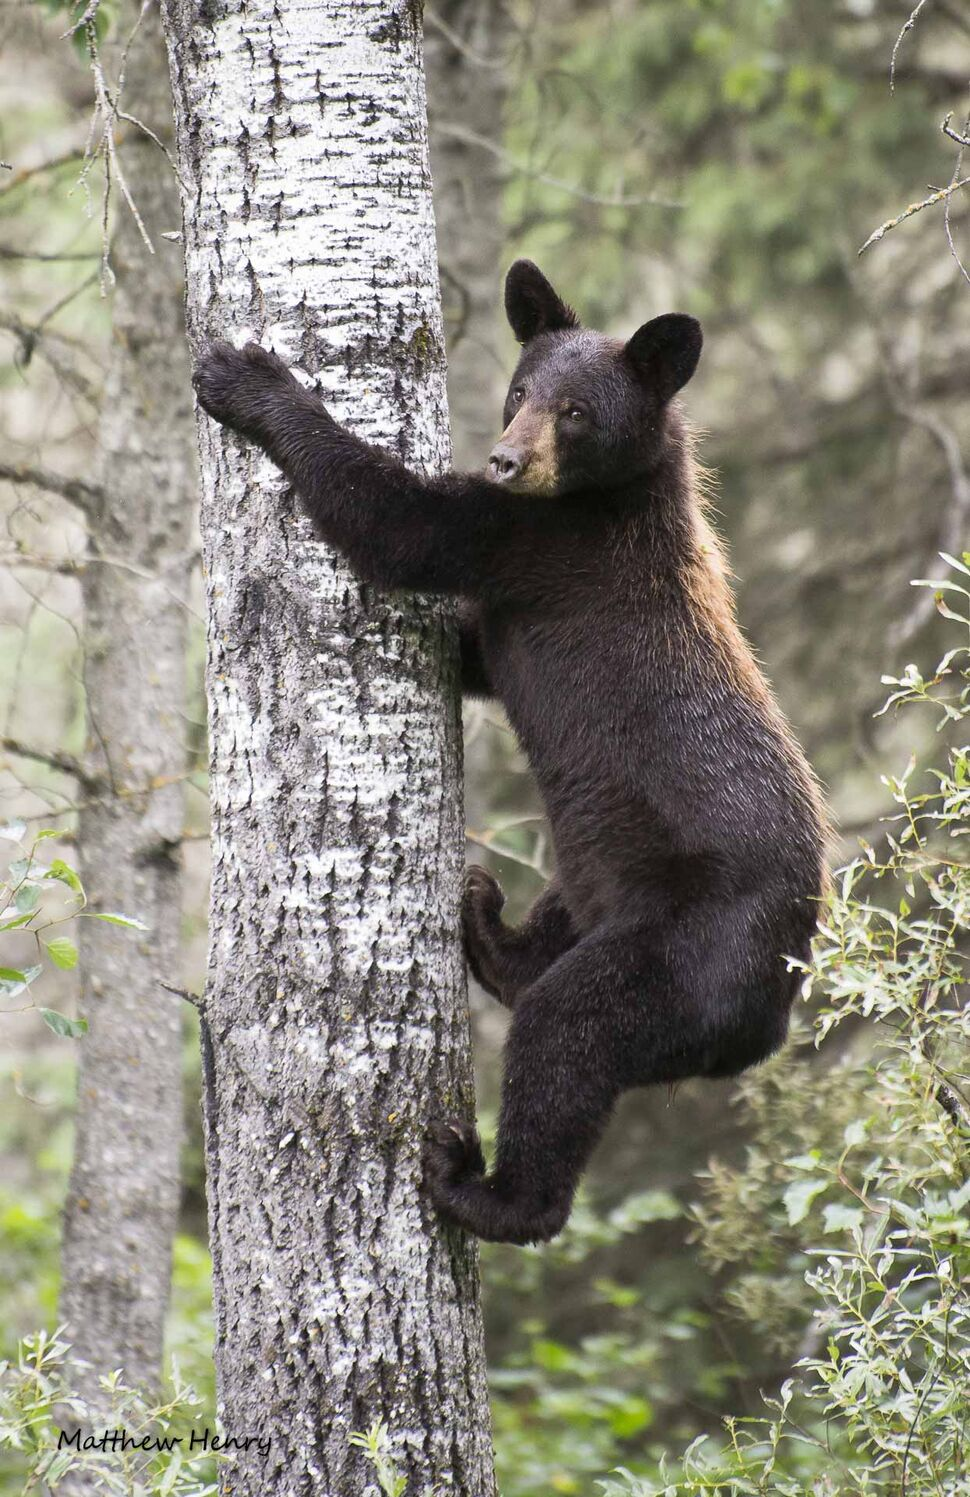 A young bear Matthew Henry got a photo of while in Riding Mountain National Park last year. After a few minutes, the bear decided Henry and his friend weren't a threat and continued to climb up the tree, where it took a nap for another 15 minutes. (Matthew Henry photo)